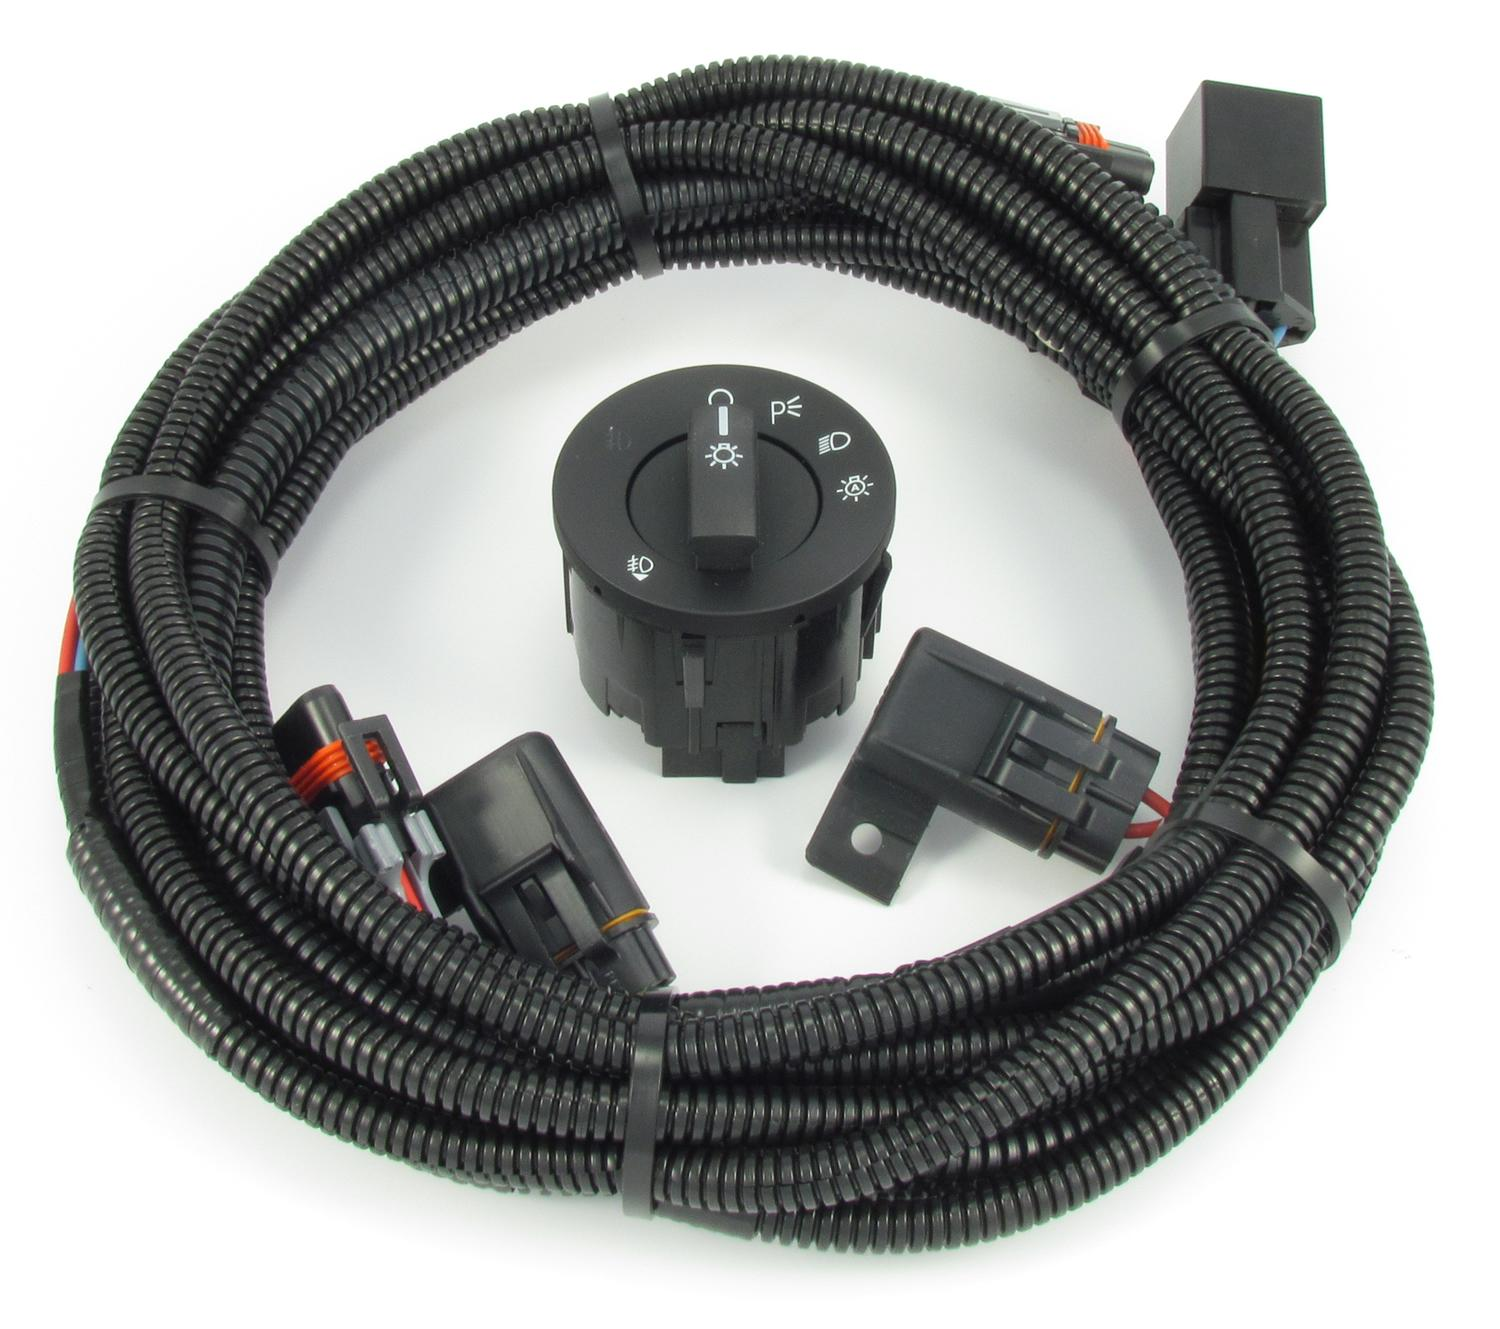 3551 fog light wiring & switch kit fits v6 and boss 302 (2013 2014) Fog Light Wiring Diagram at reclaimingppi.co